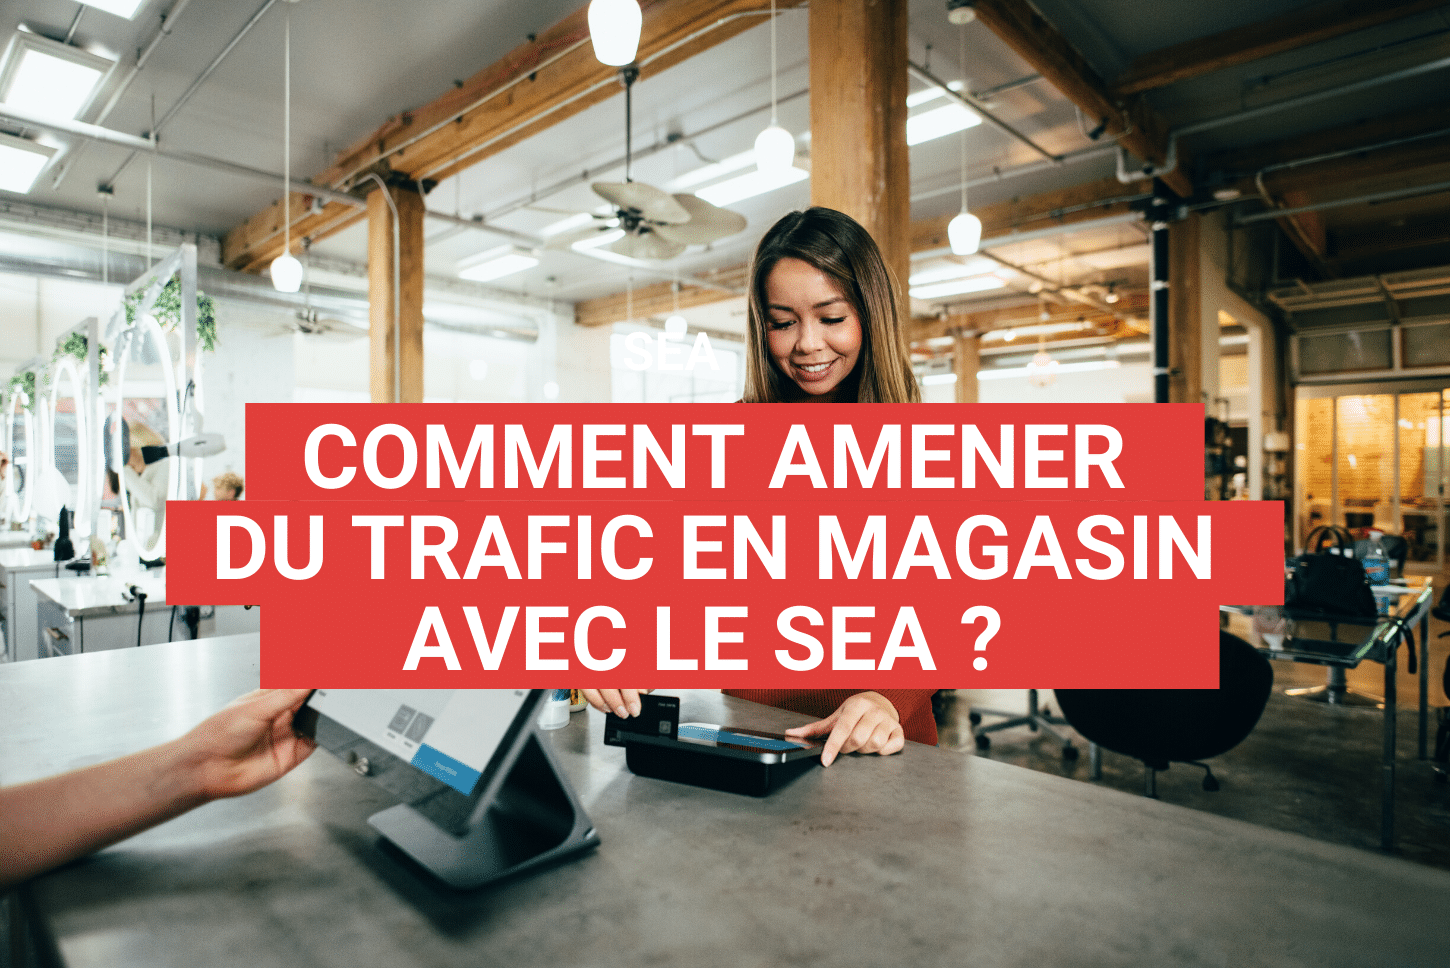 Comment amener du trafic en magasin avec google ads ?